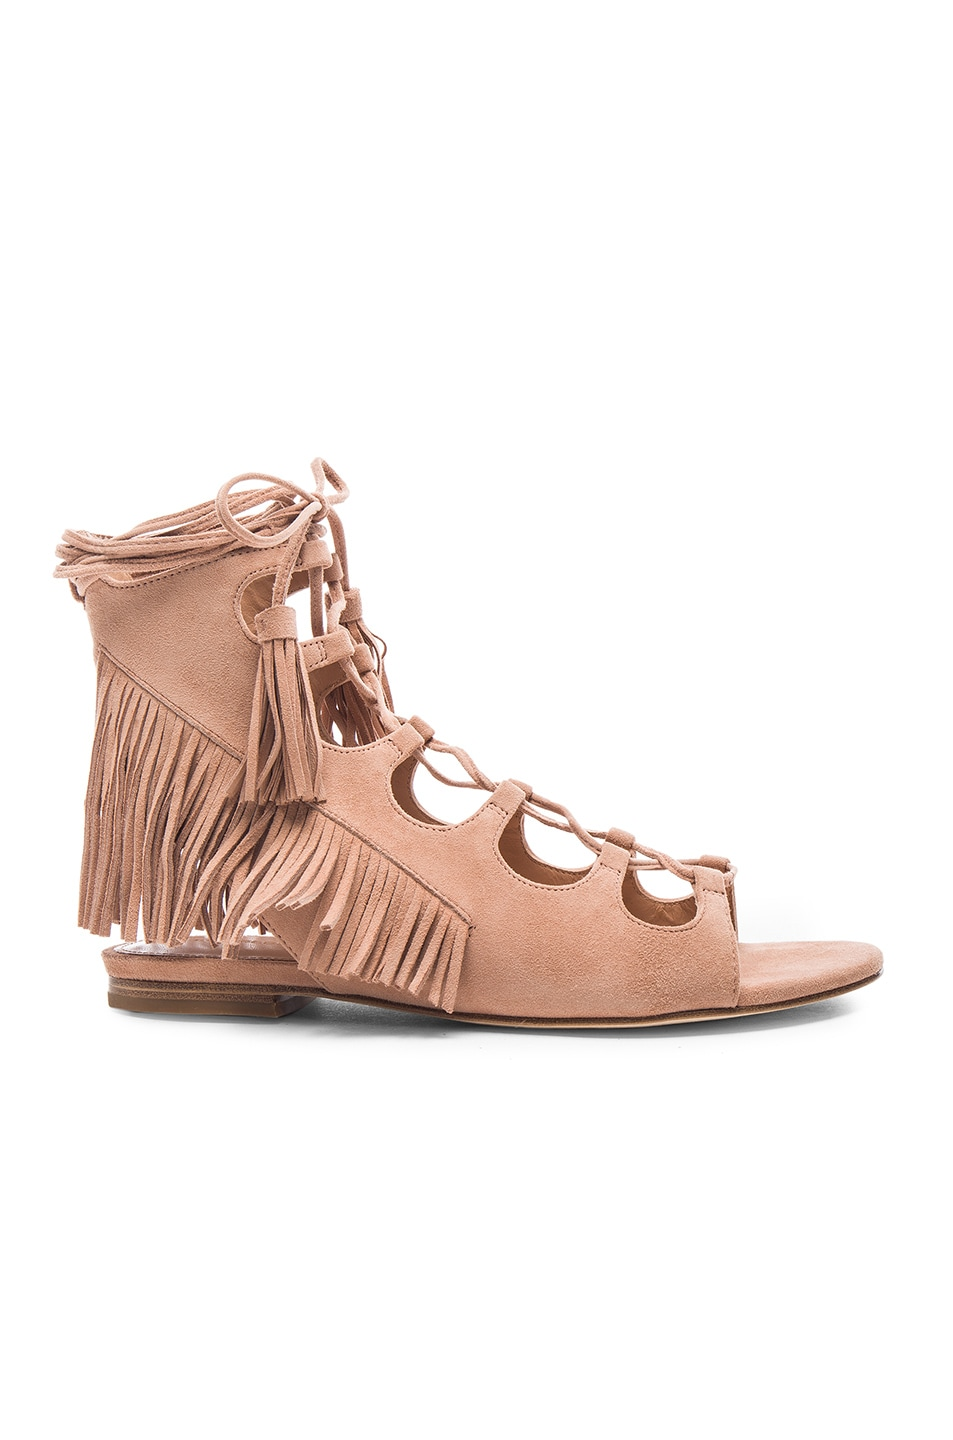 Image 1 of Sigerson Morrison Suede Azzia Sandals in Tan